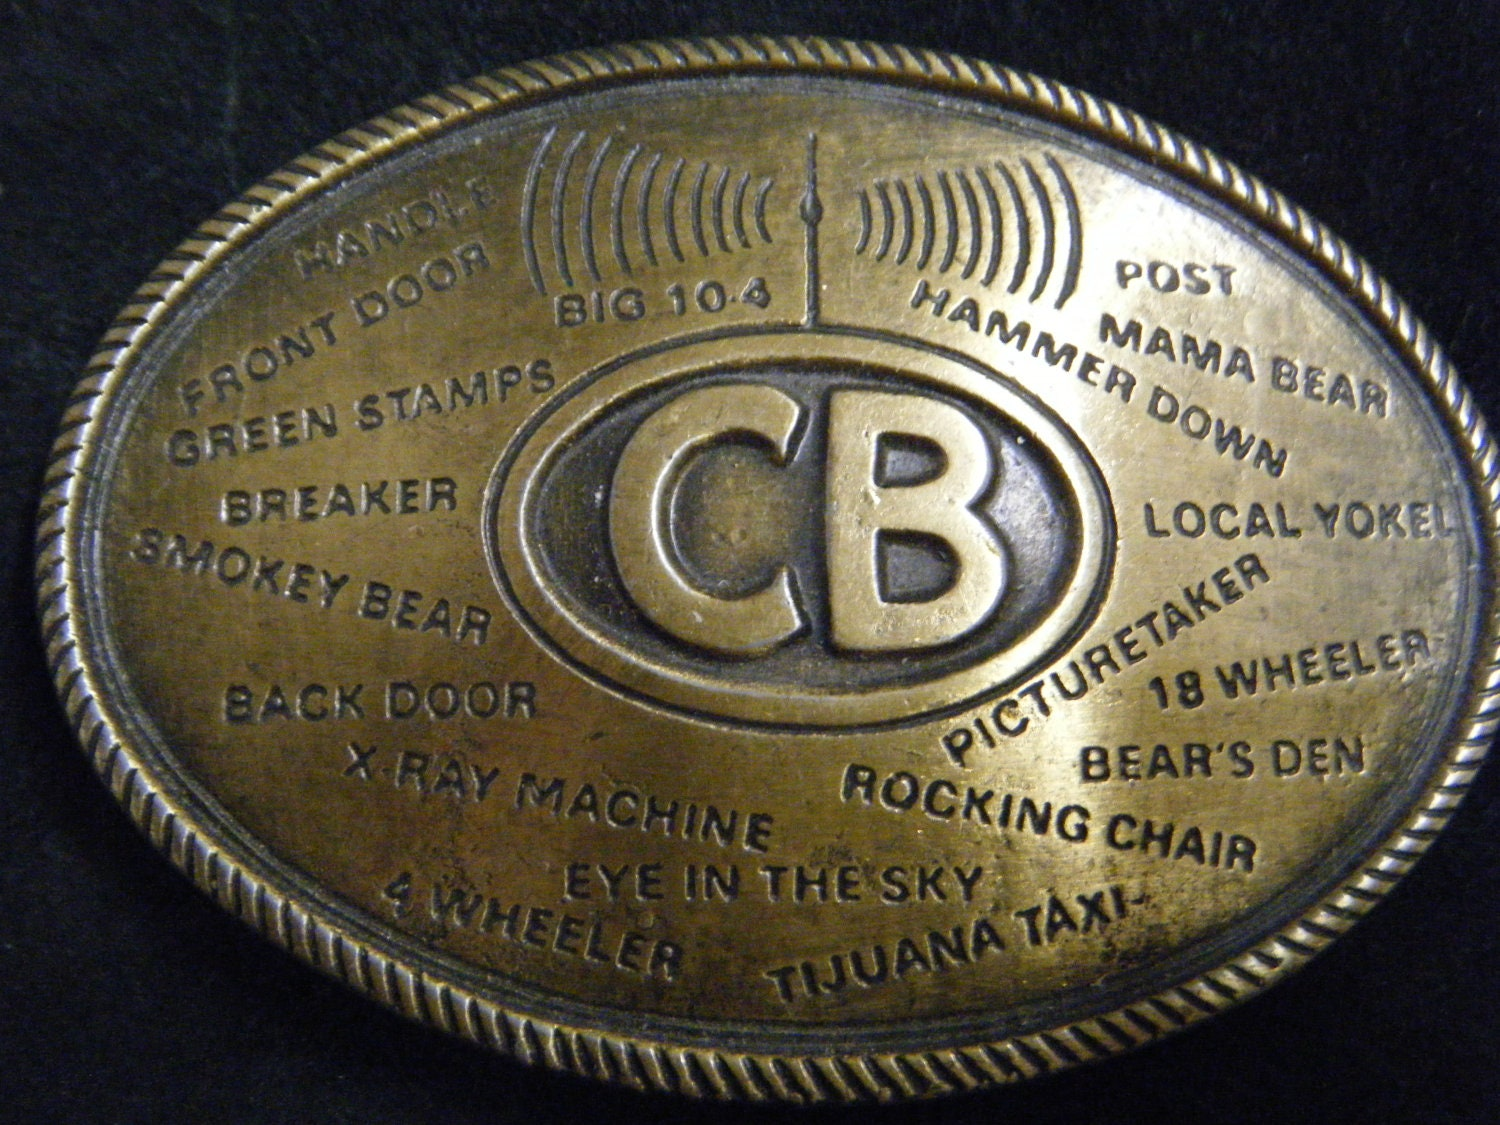 Cb Lingo besides Cb Slang together with Cb Radio Slang Trucker Belt Buckle furthermore Lingo additionally Retrospace Cb Radio Slang Dictionary. on trucker cb radio lingo